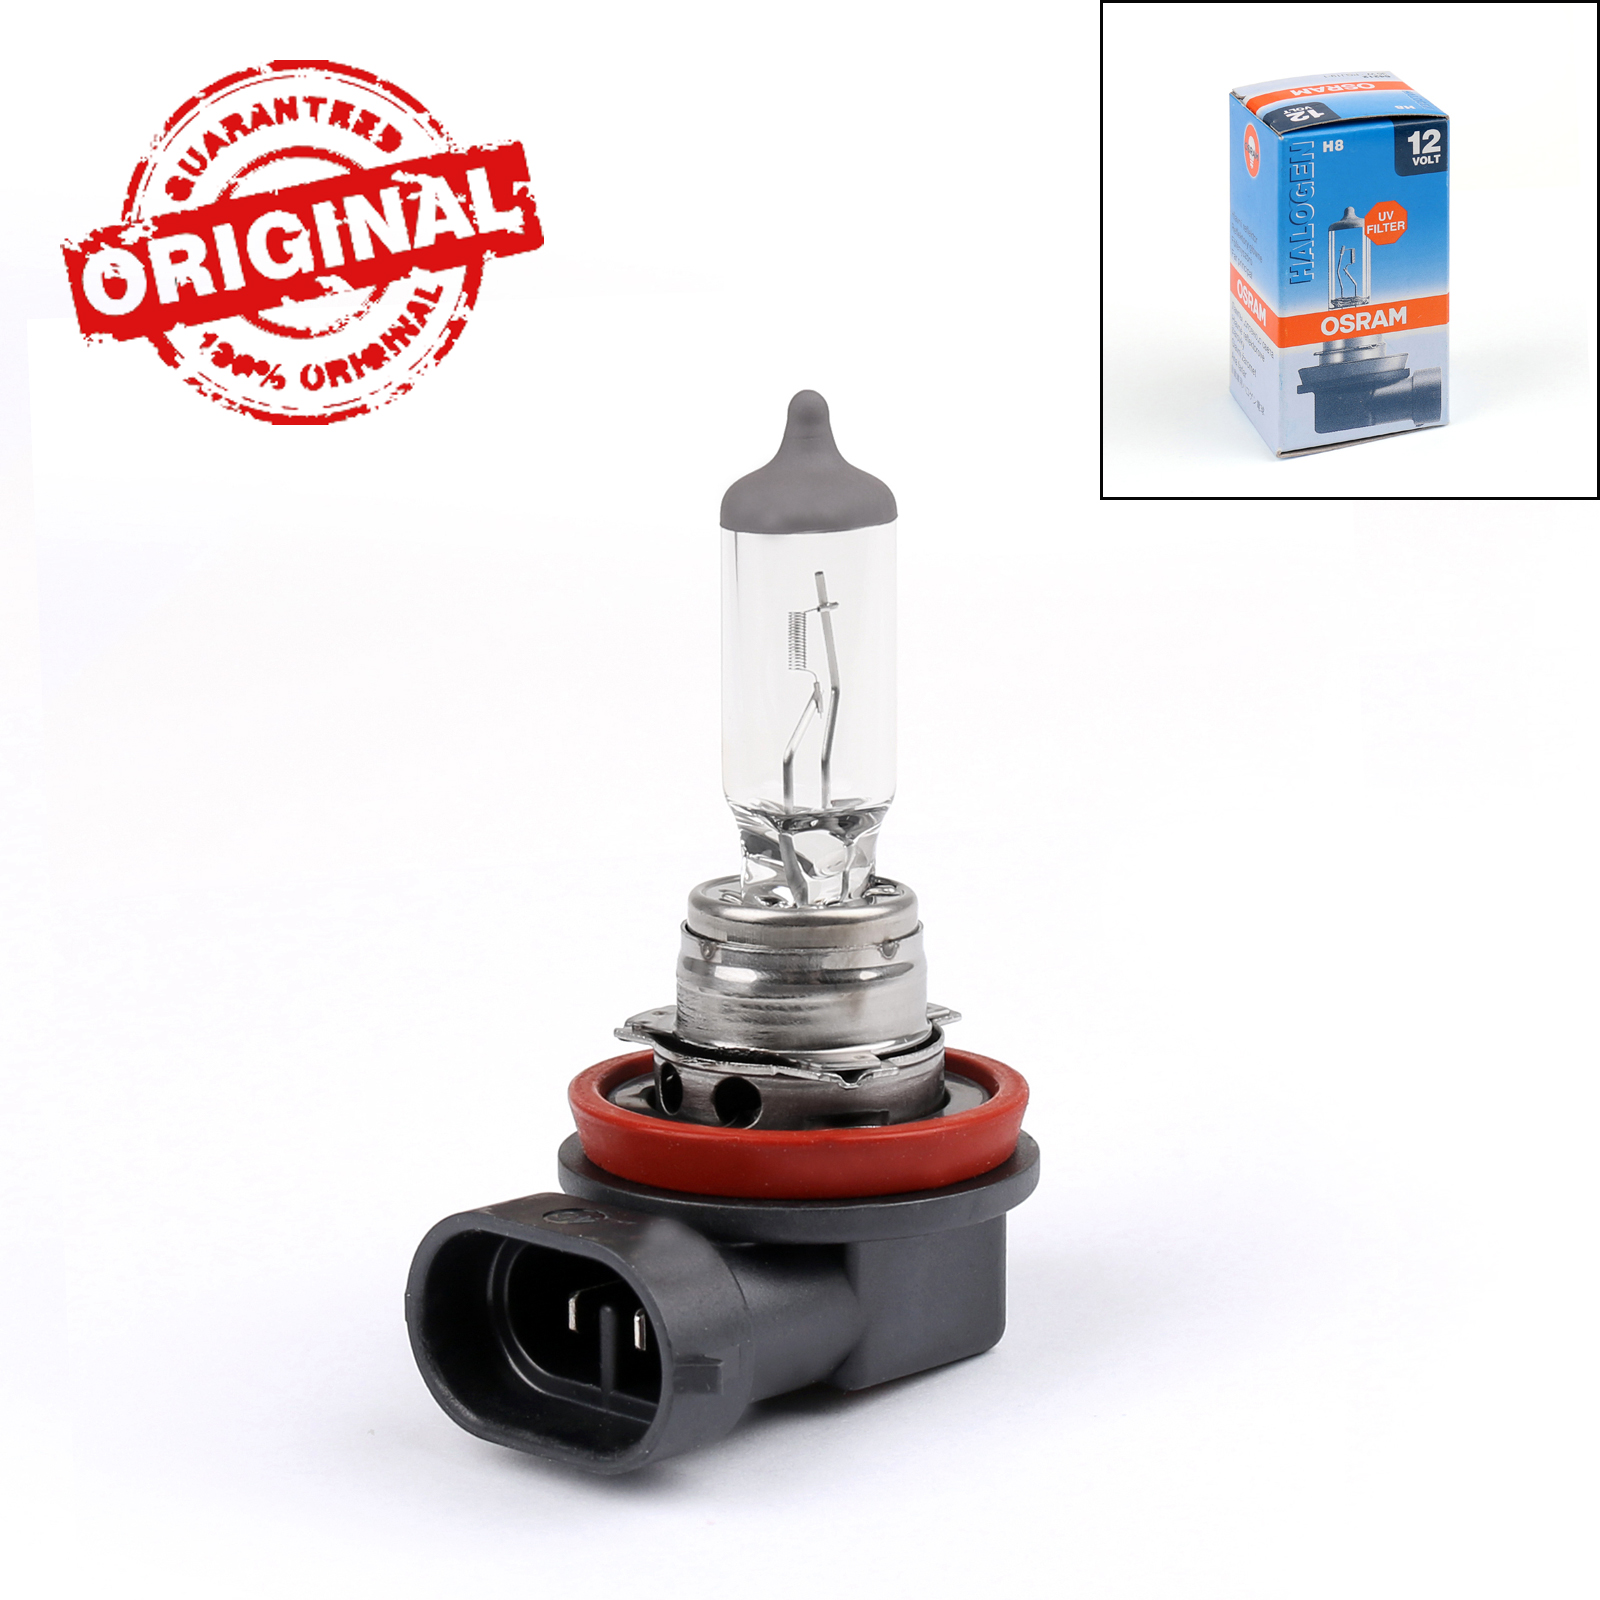 Osram Lamp Details About 1x Osram H8 12v 35w 3200k Halogen Original Headlight Lamp Bulb Made In Germany B